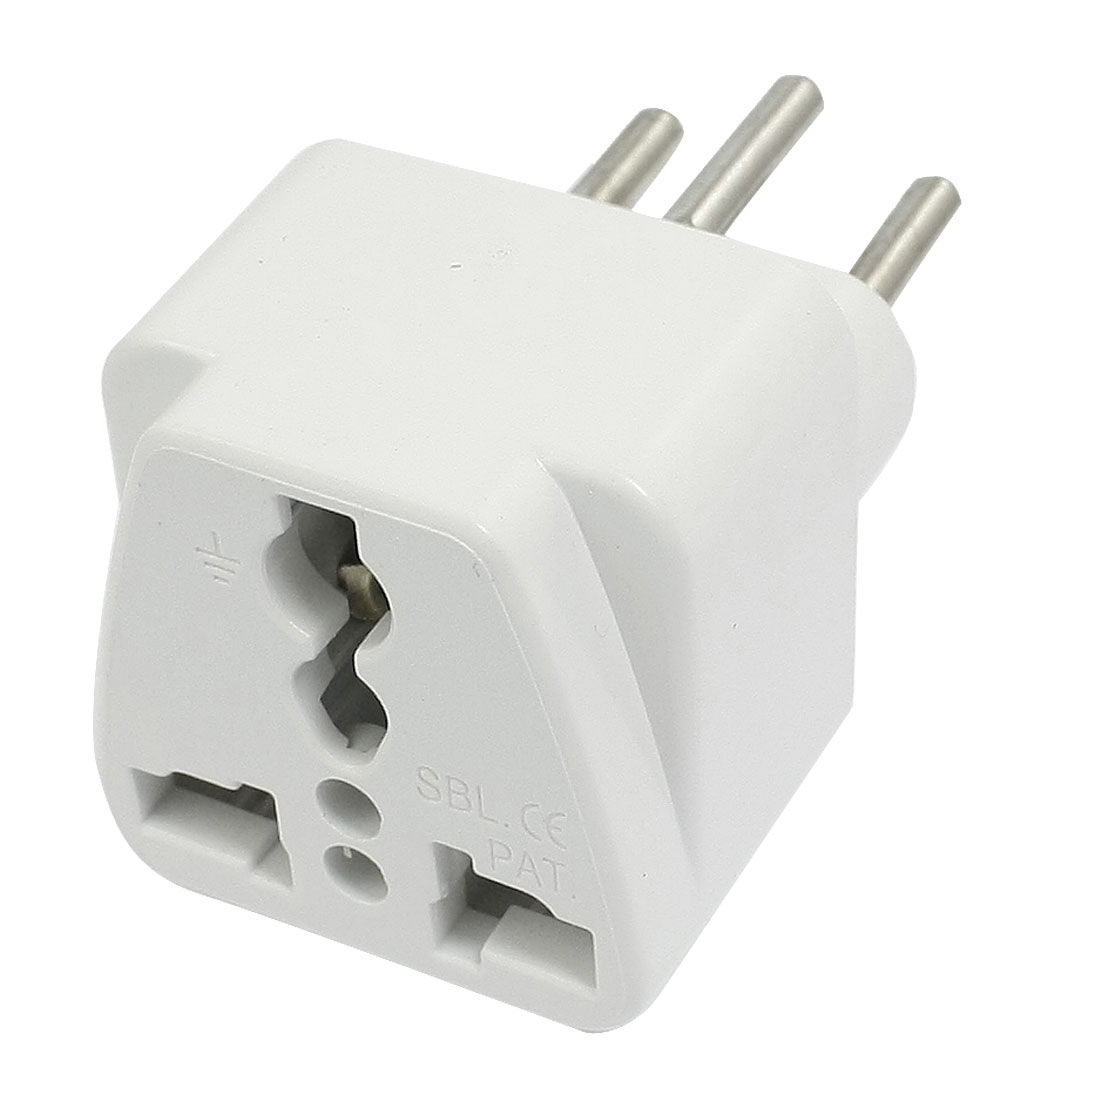 Switzerland Plug to AU UK US Outlet 250V Universal AC Power Adapter Adaptor